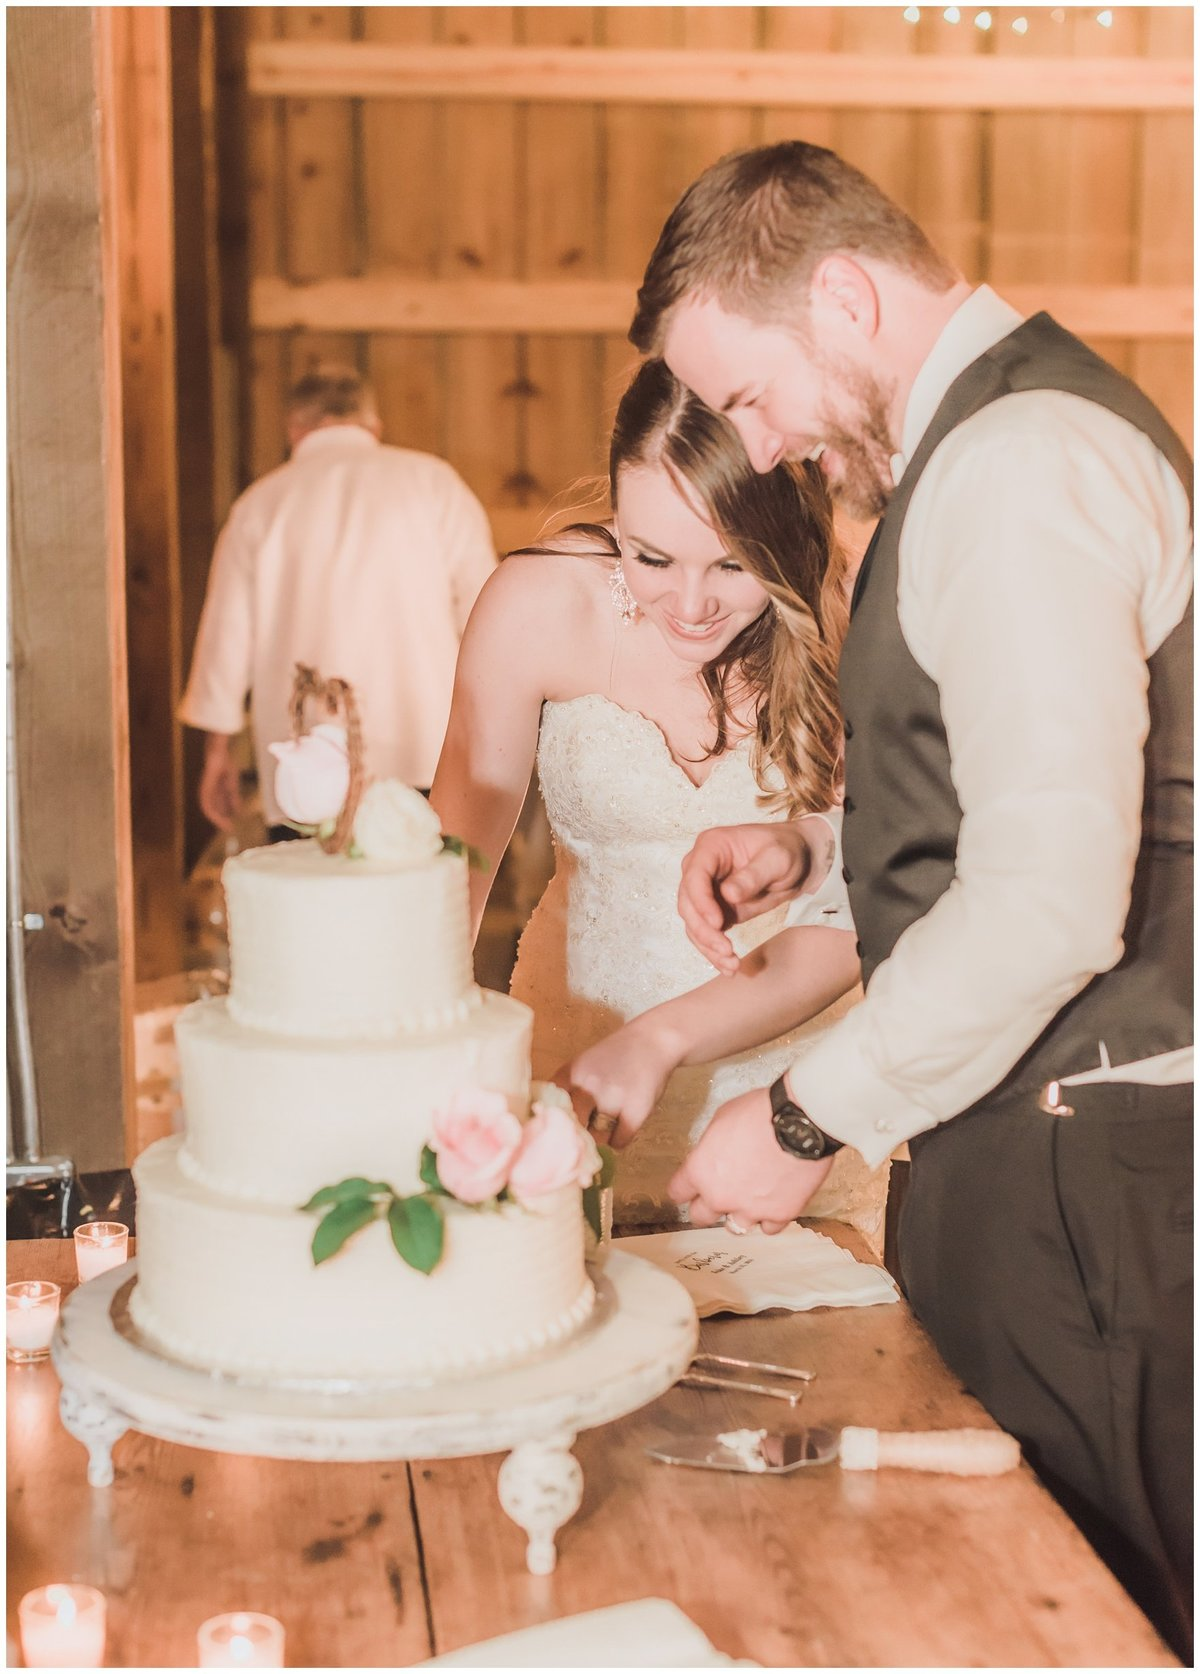 Jesse-Carleton-Panama City Florida-Wedding-Photographer-Barn Weddings-Session-Photography-Rosie Creek Farms-destination photographer_0236